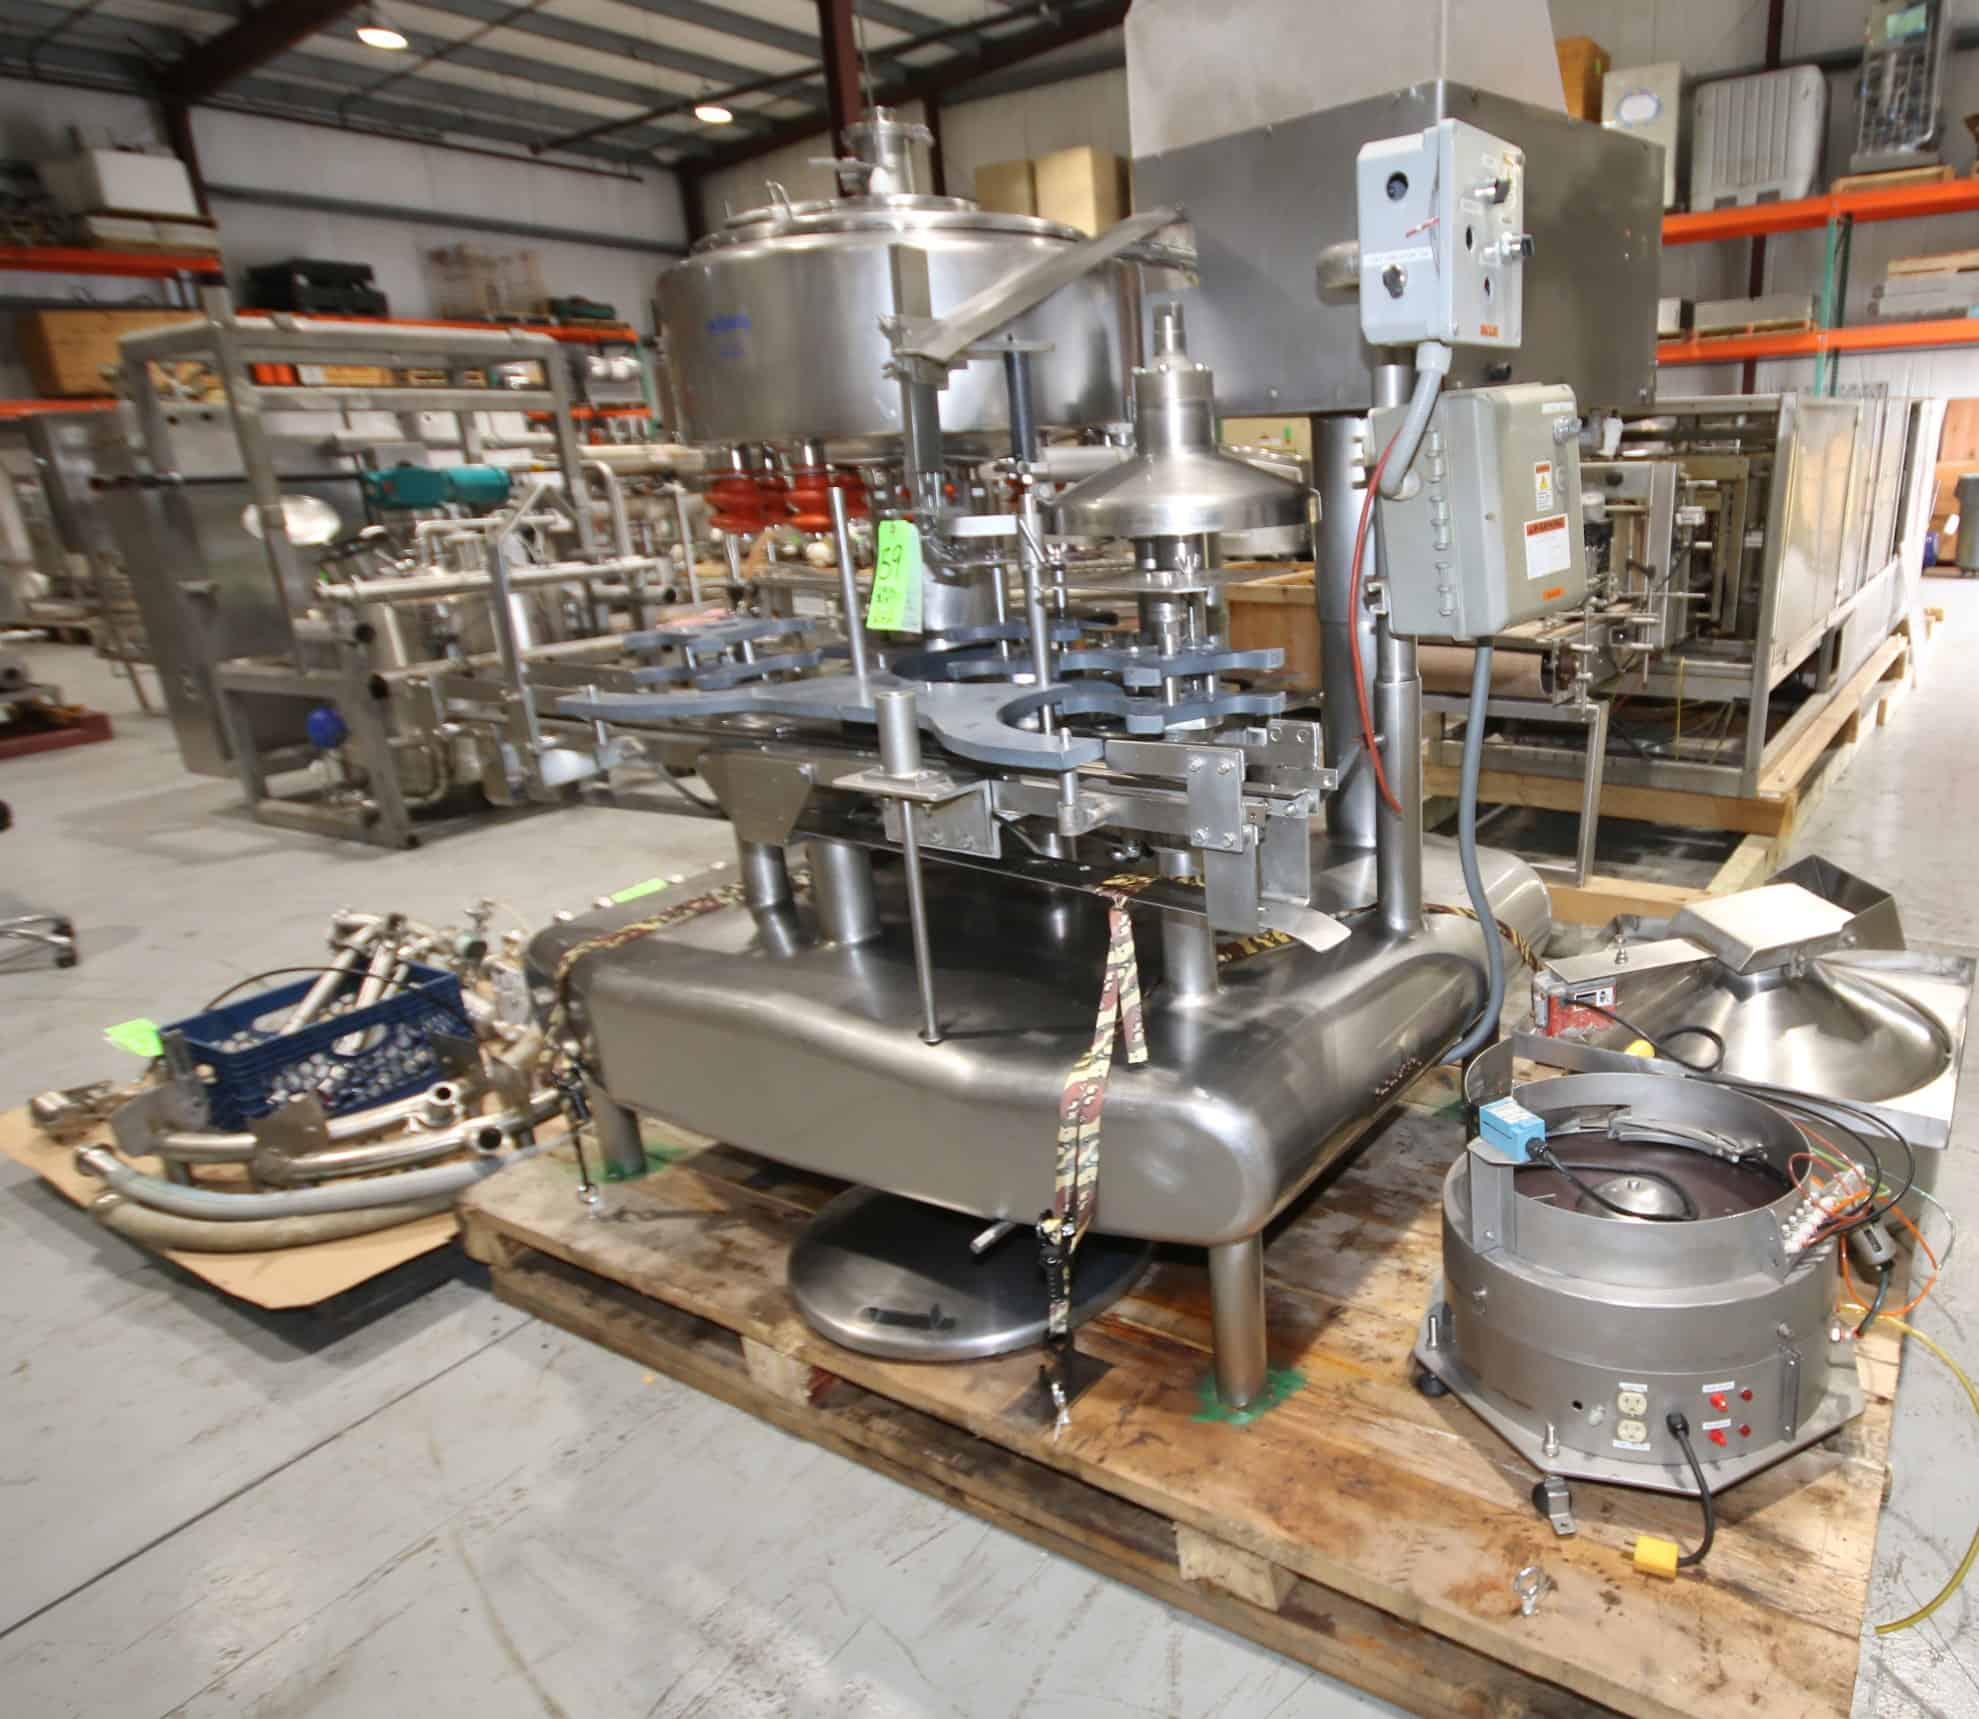 Federal 12 - Valve Rotary S/S Filler, SN 1562GWS2/124R930, Monobloc Style with 4 - Station Press on Capper, Includes Vibratory Cap Feeder with Feed Rail, Set - Up with Plastic Square Gallon HDPE Bottle Change Parts, Includes Rubbers & Valves, Float Assembly & CIP Rings